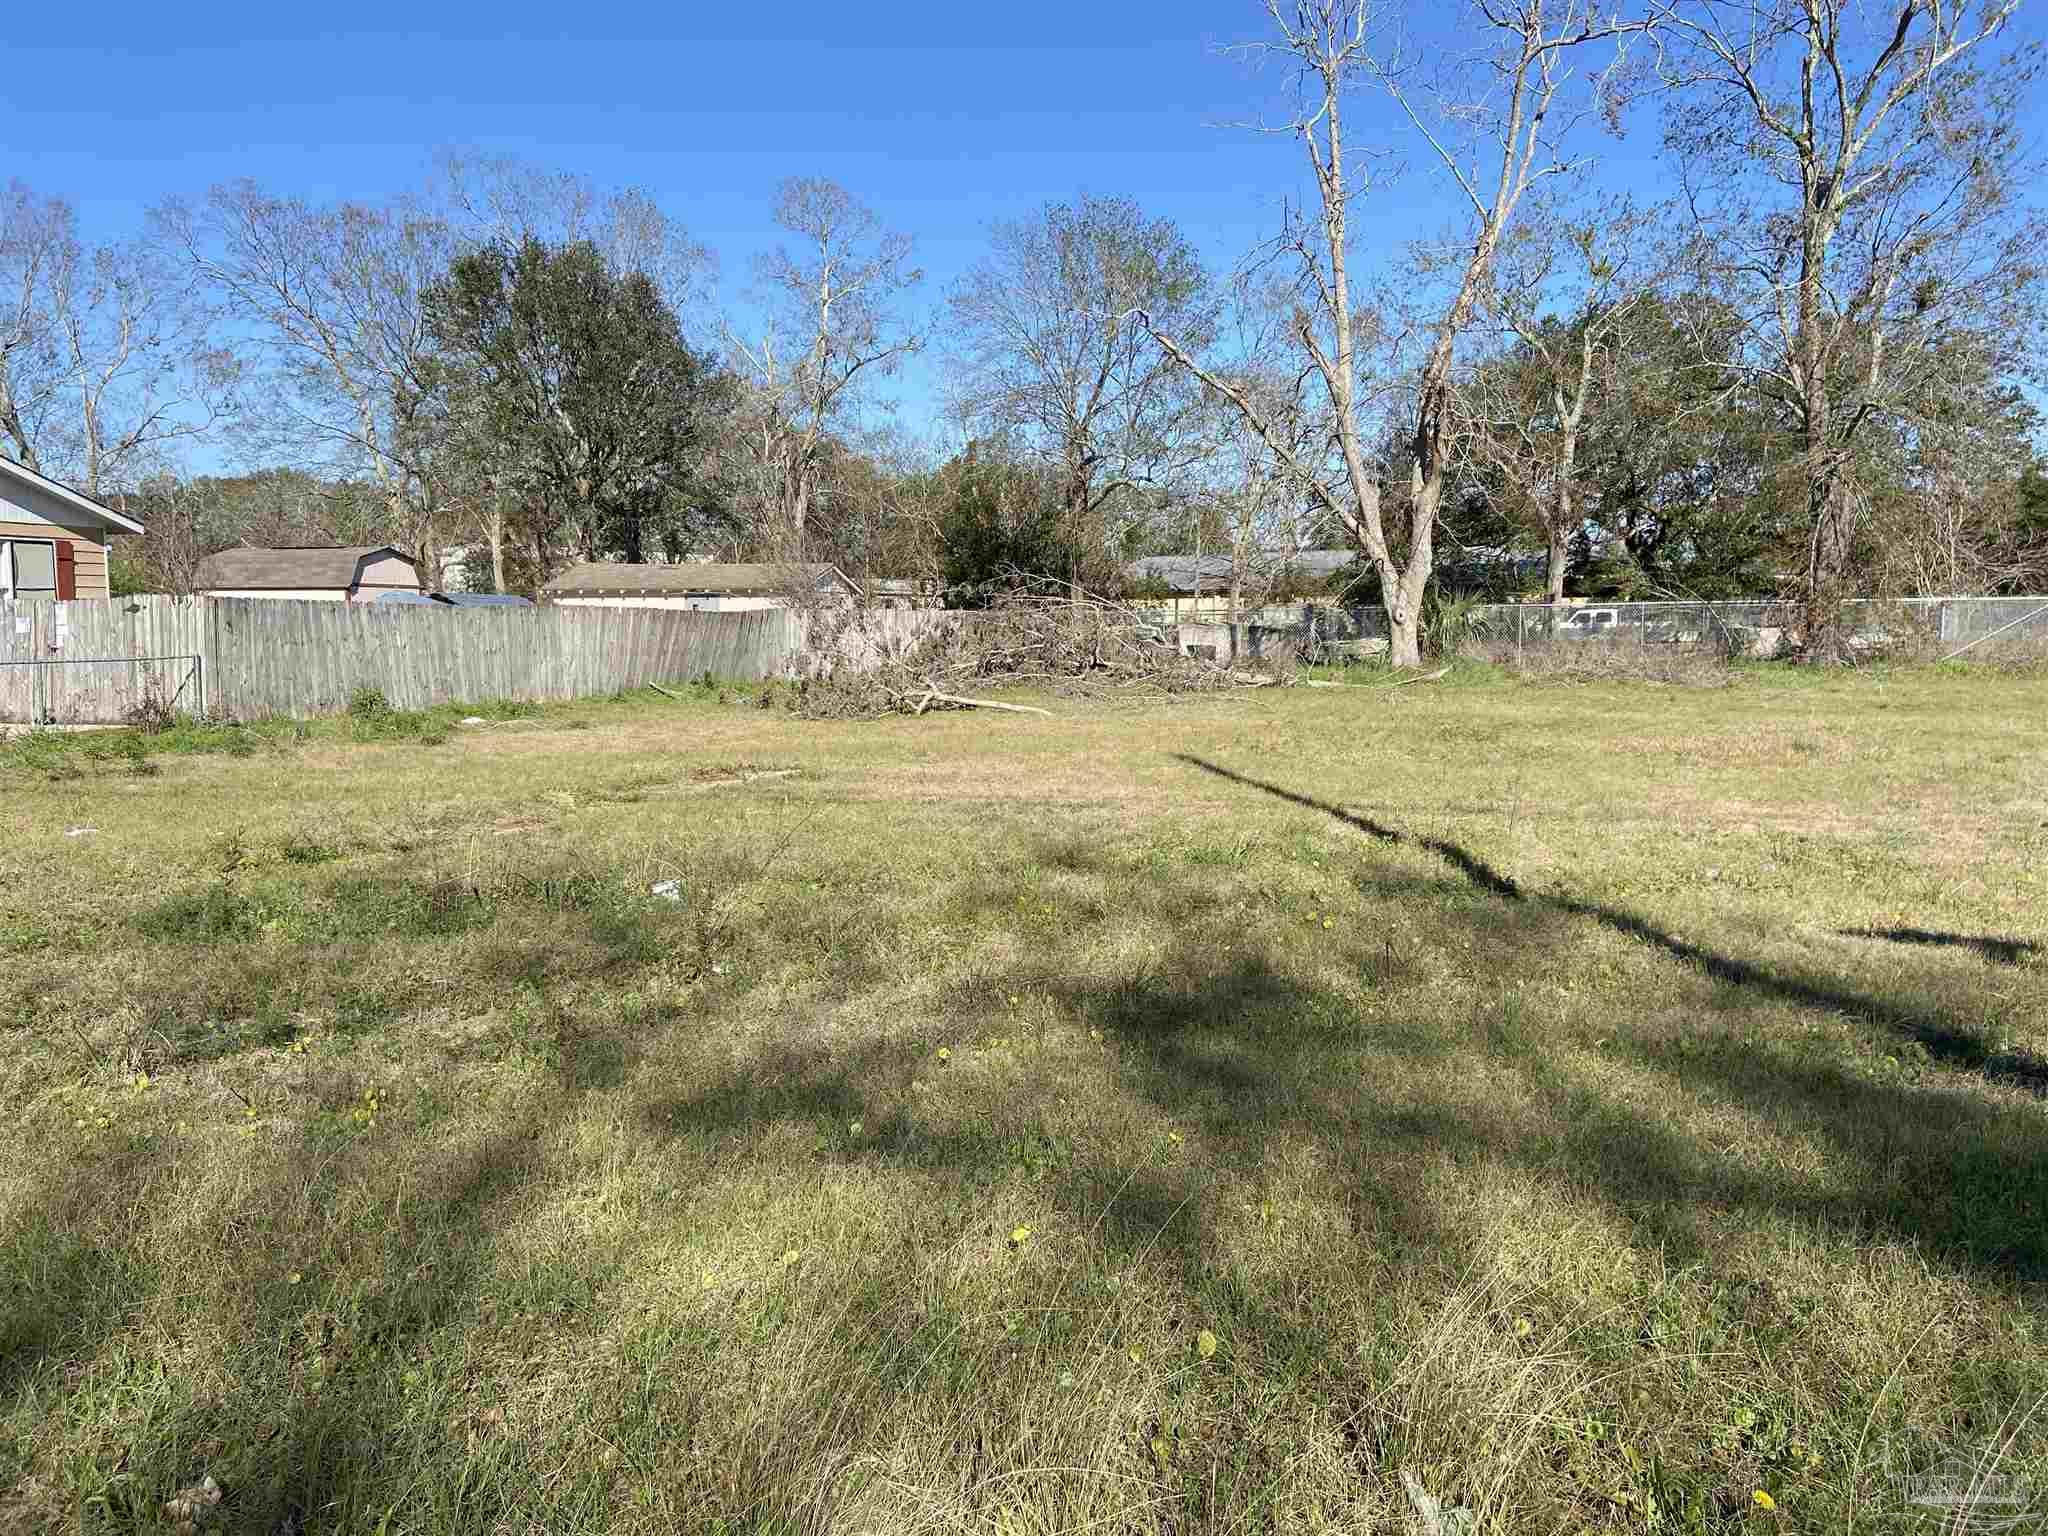 Centrally Located Corner lot on Town St near Fairfield and Pace Blvd.  .22 acres zoned HC/LI